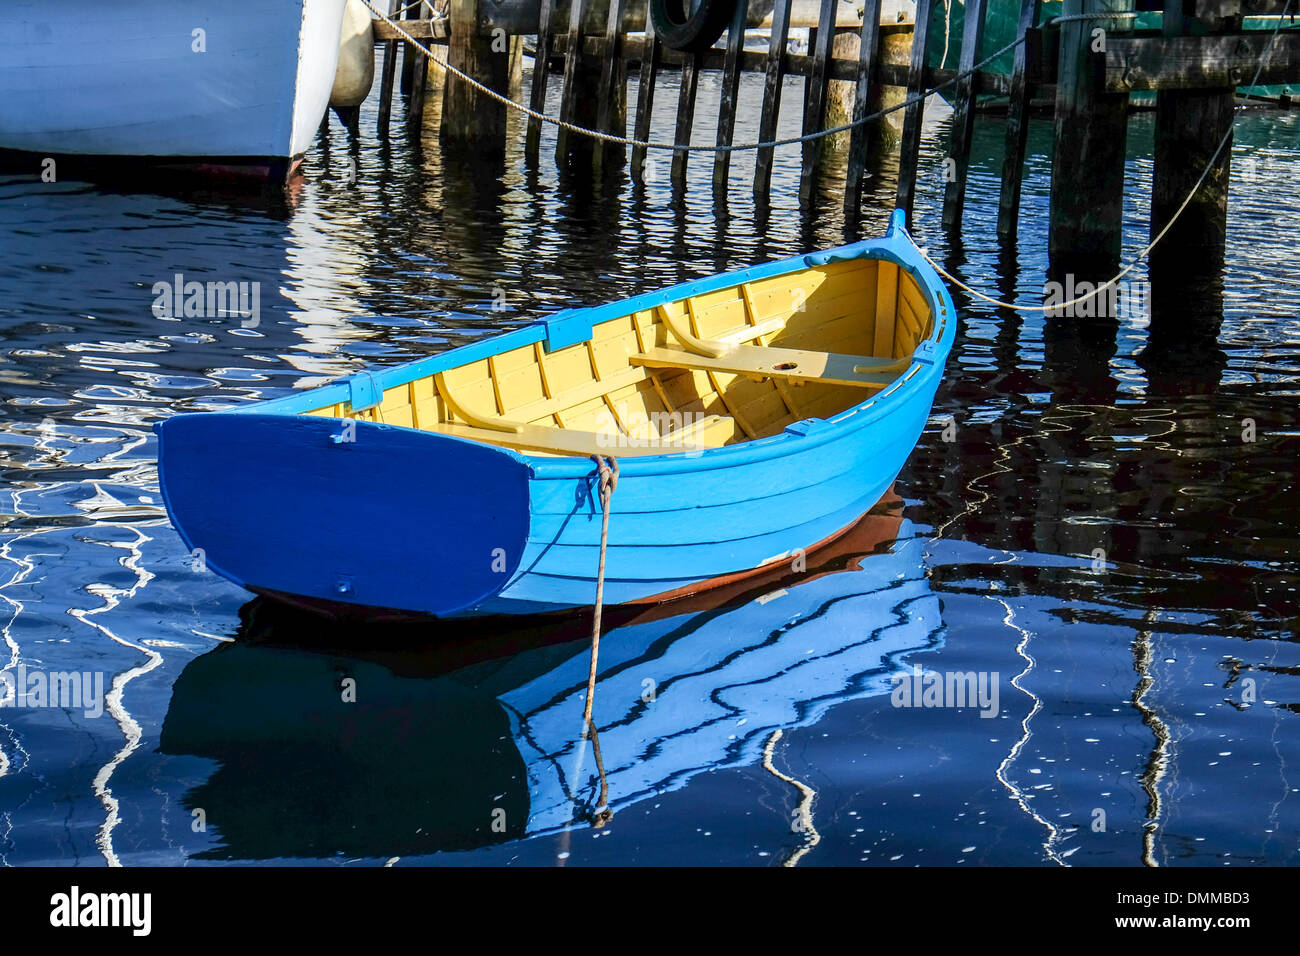 A blue painted traditional wooden dinghy moored at the Wooden Boat School at Franklin in Tasmania - Stock Image